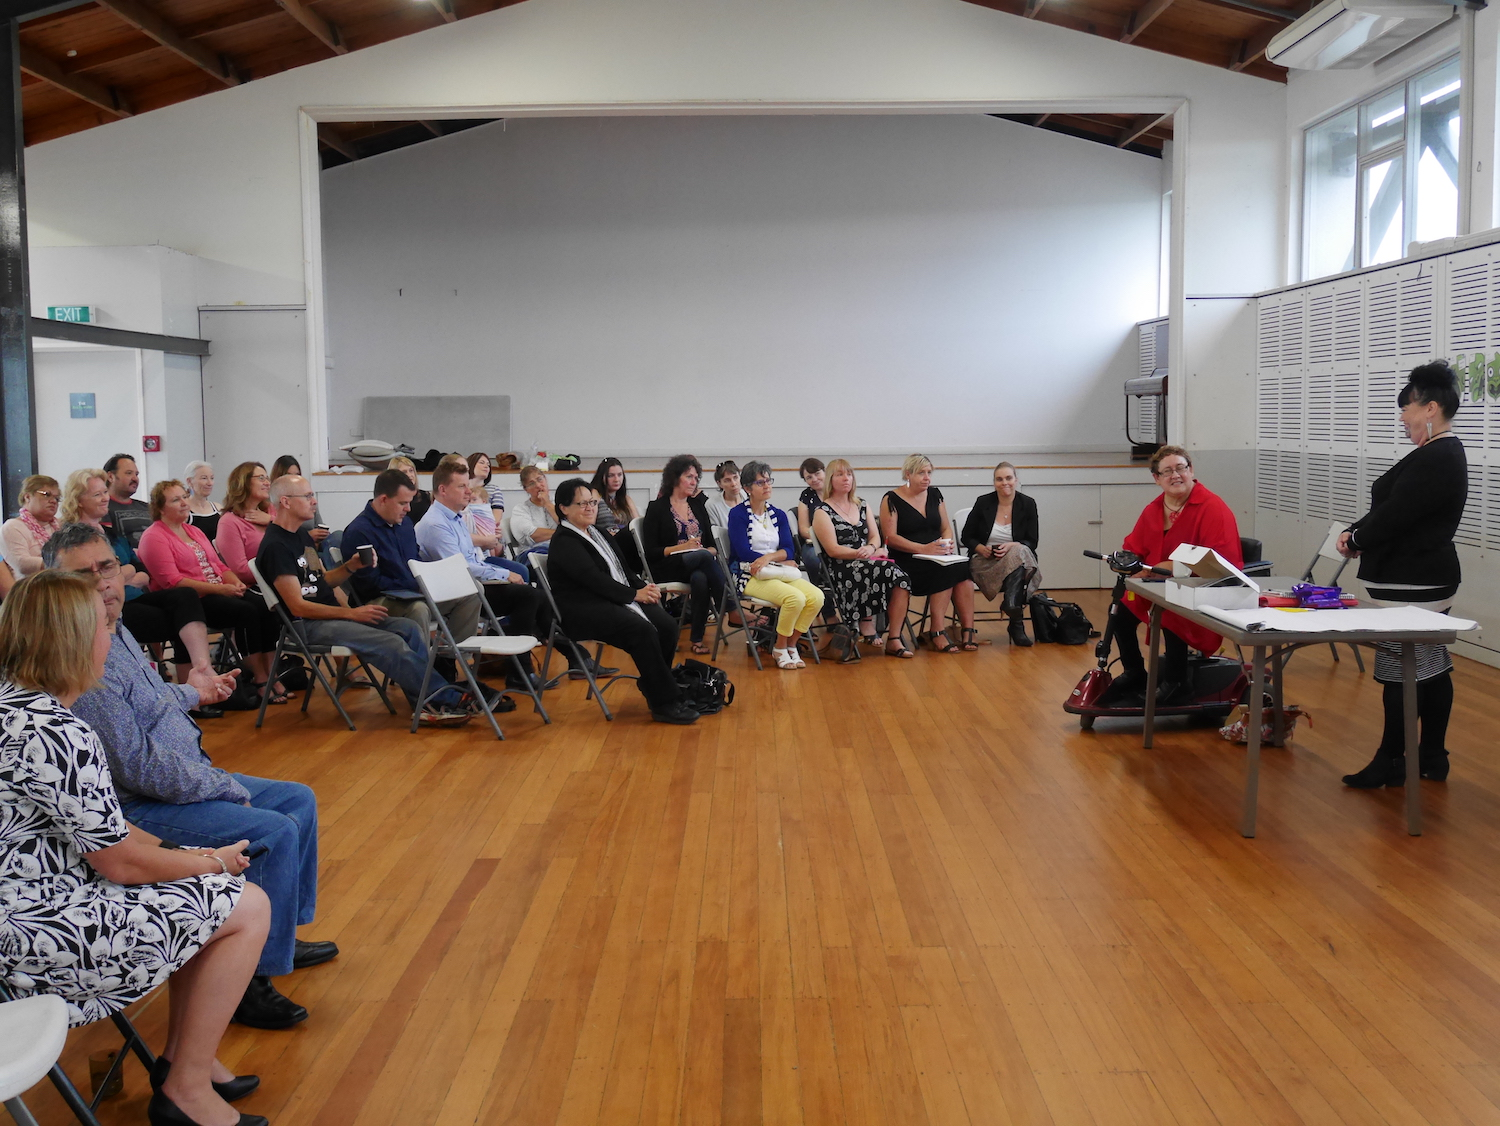 More than 40 people attended the morning hui and the evening hui was also well-attended.